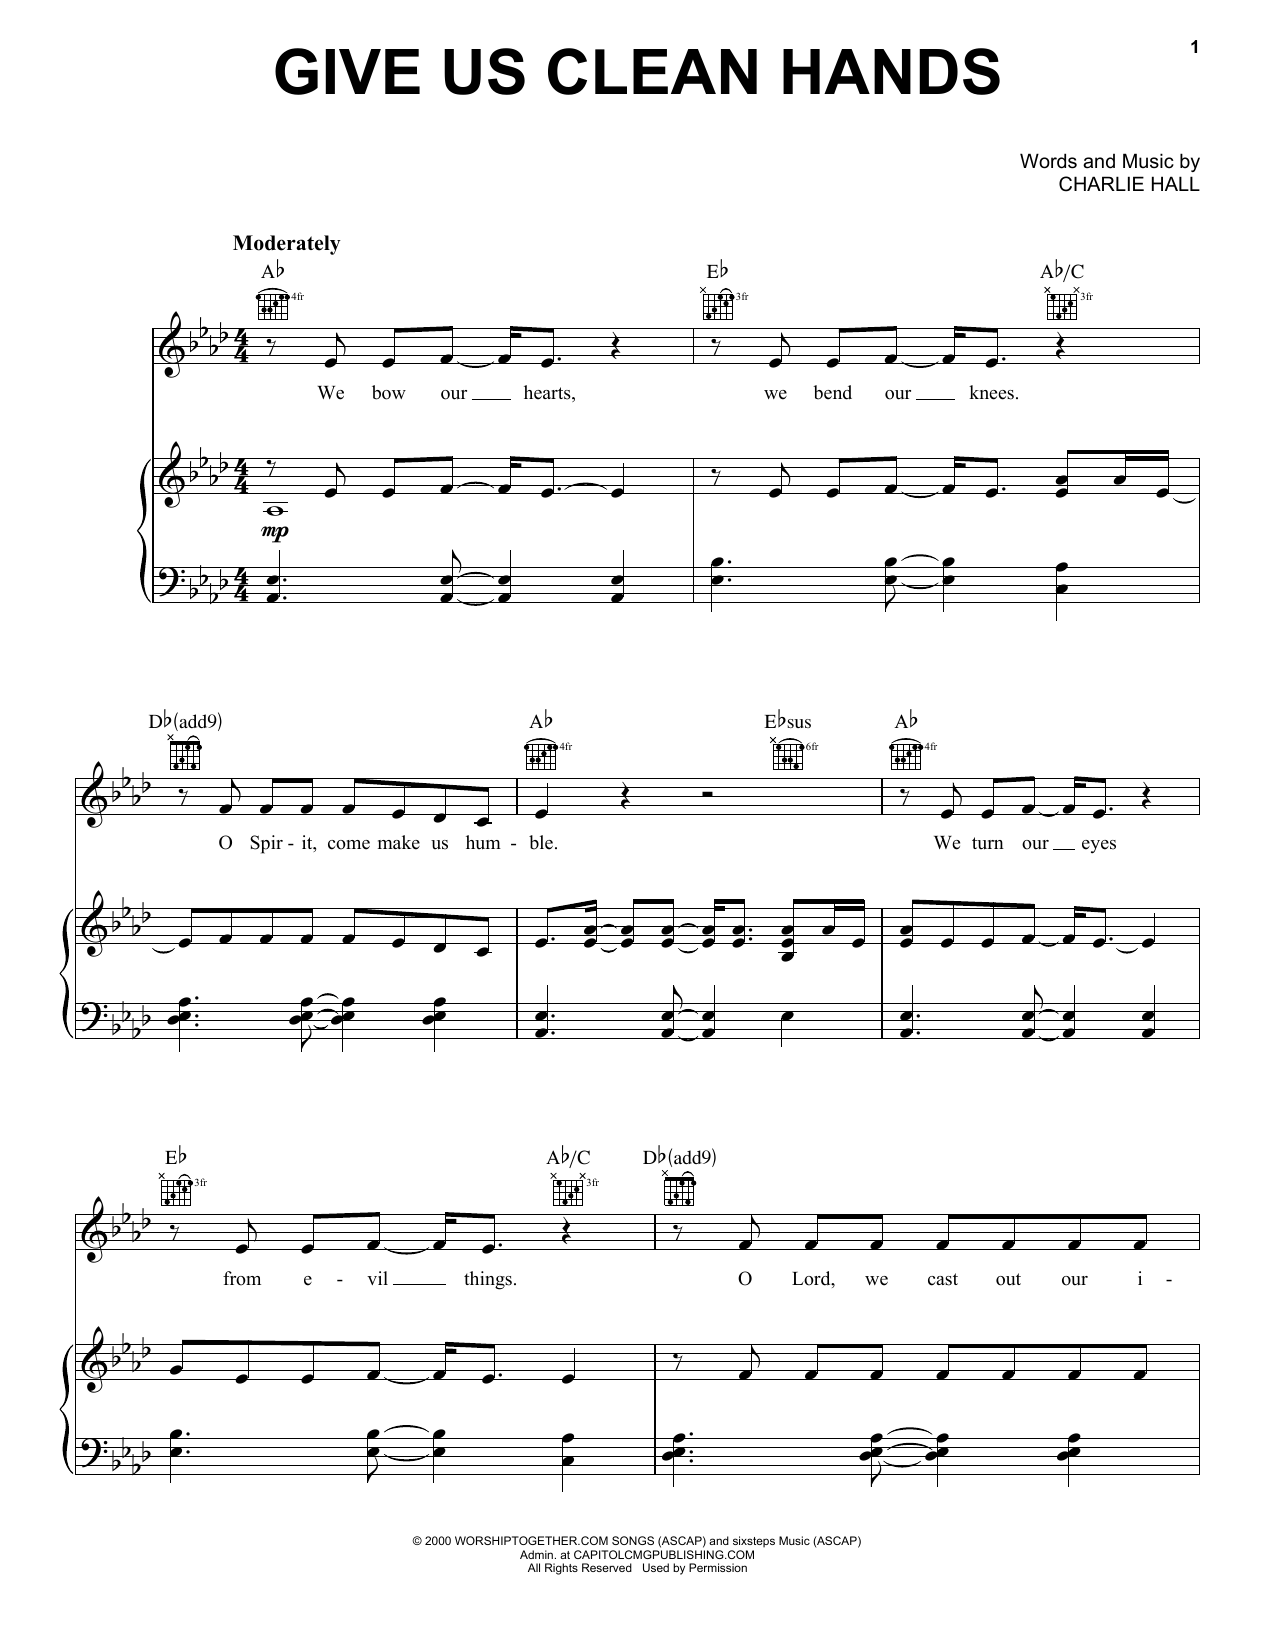 Download Chris Tomlin 'Give Us Clean Hands' Digital Sheet Music Notes & Chords and start playing in minutes